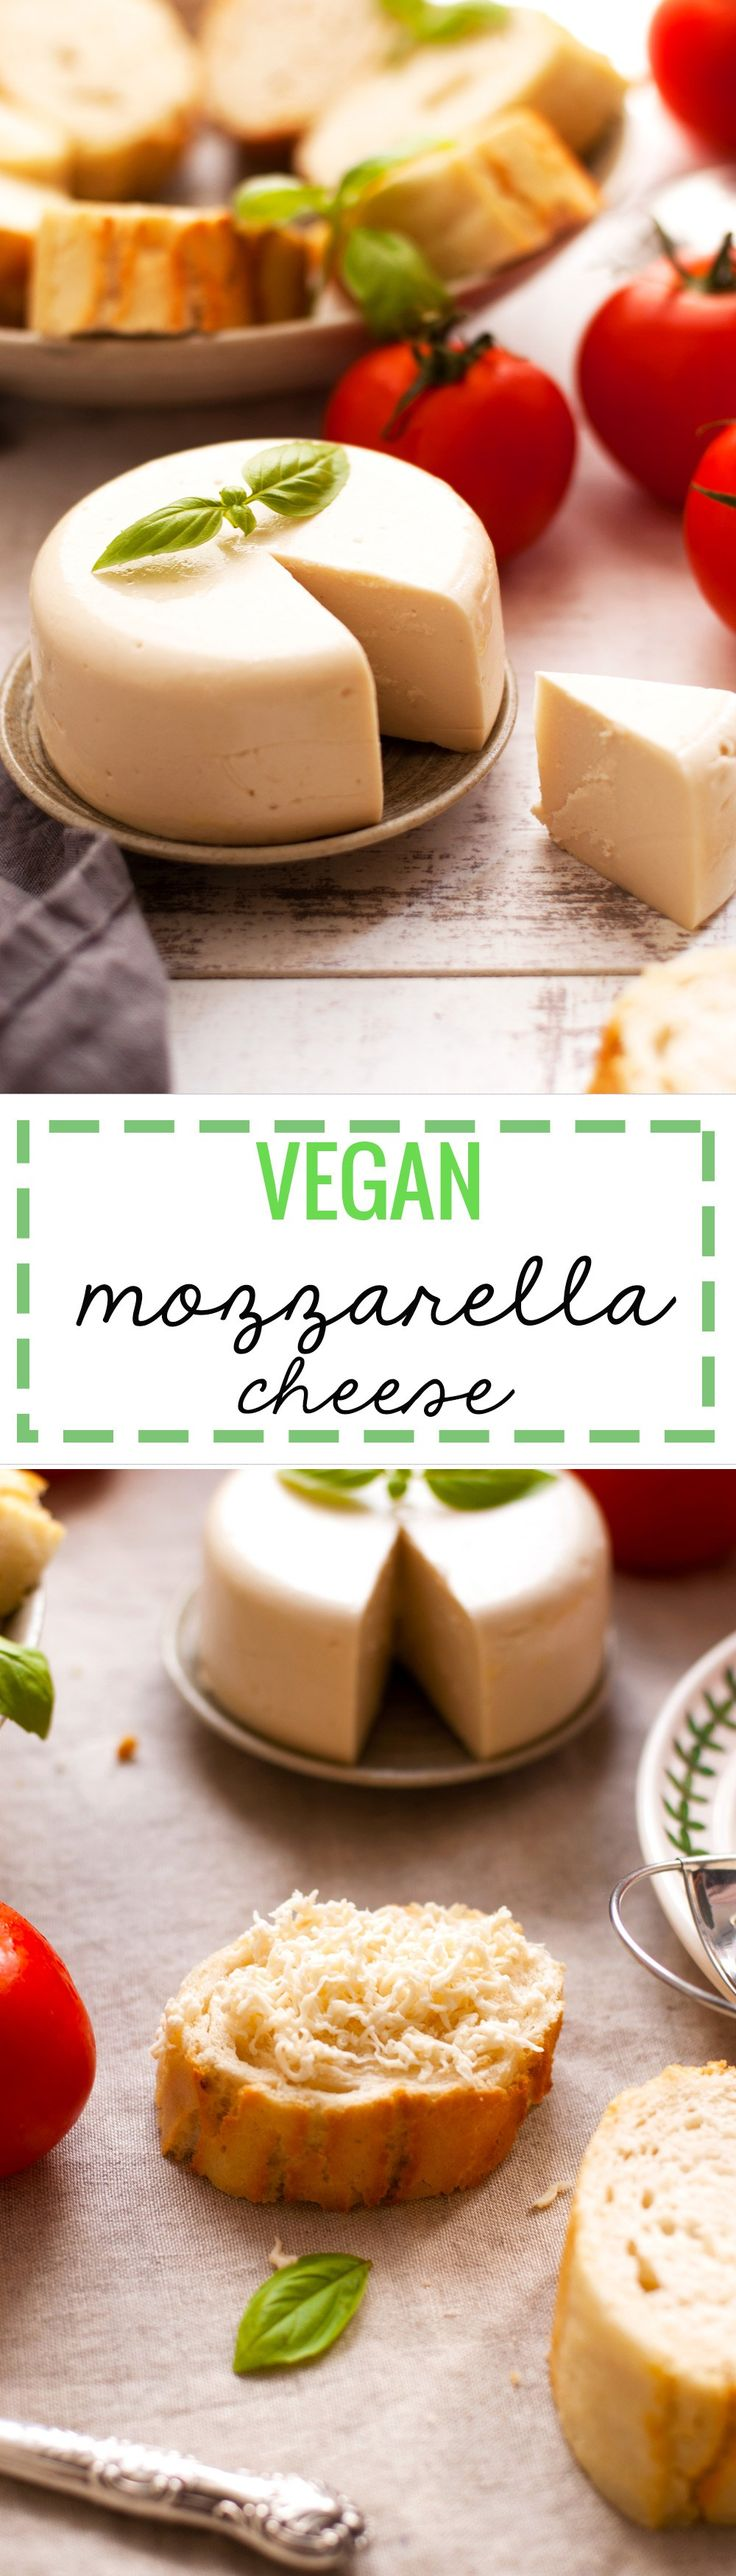 Vegan mozzarella cheese recipe. Delicious alternative to cheese, great as a pizza topping or grilled on toast. You are going to love it!